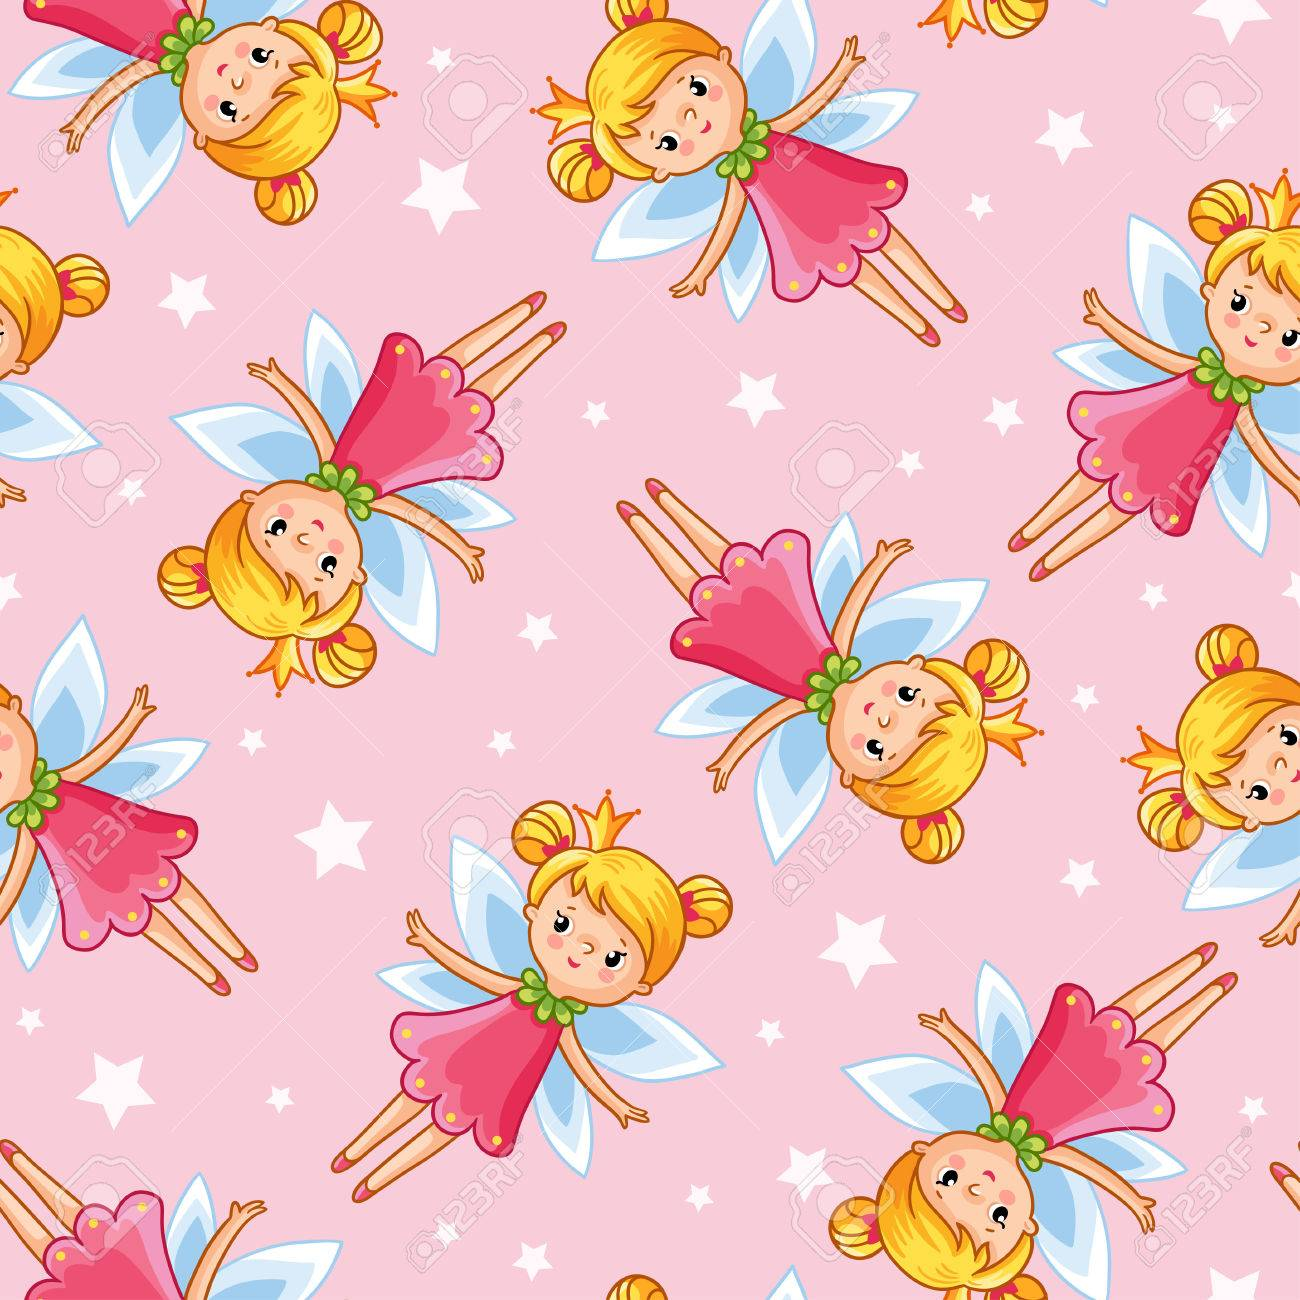 Vector Seamless Illustration Of A Young Cute Little Fairy Wallpaper